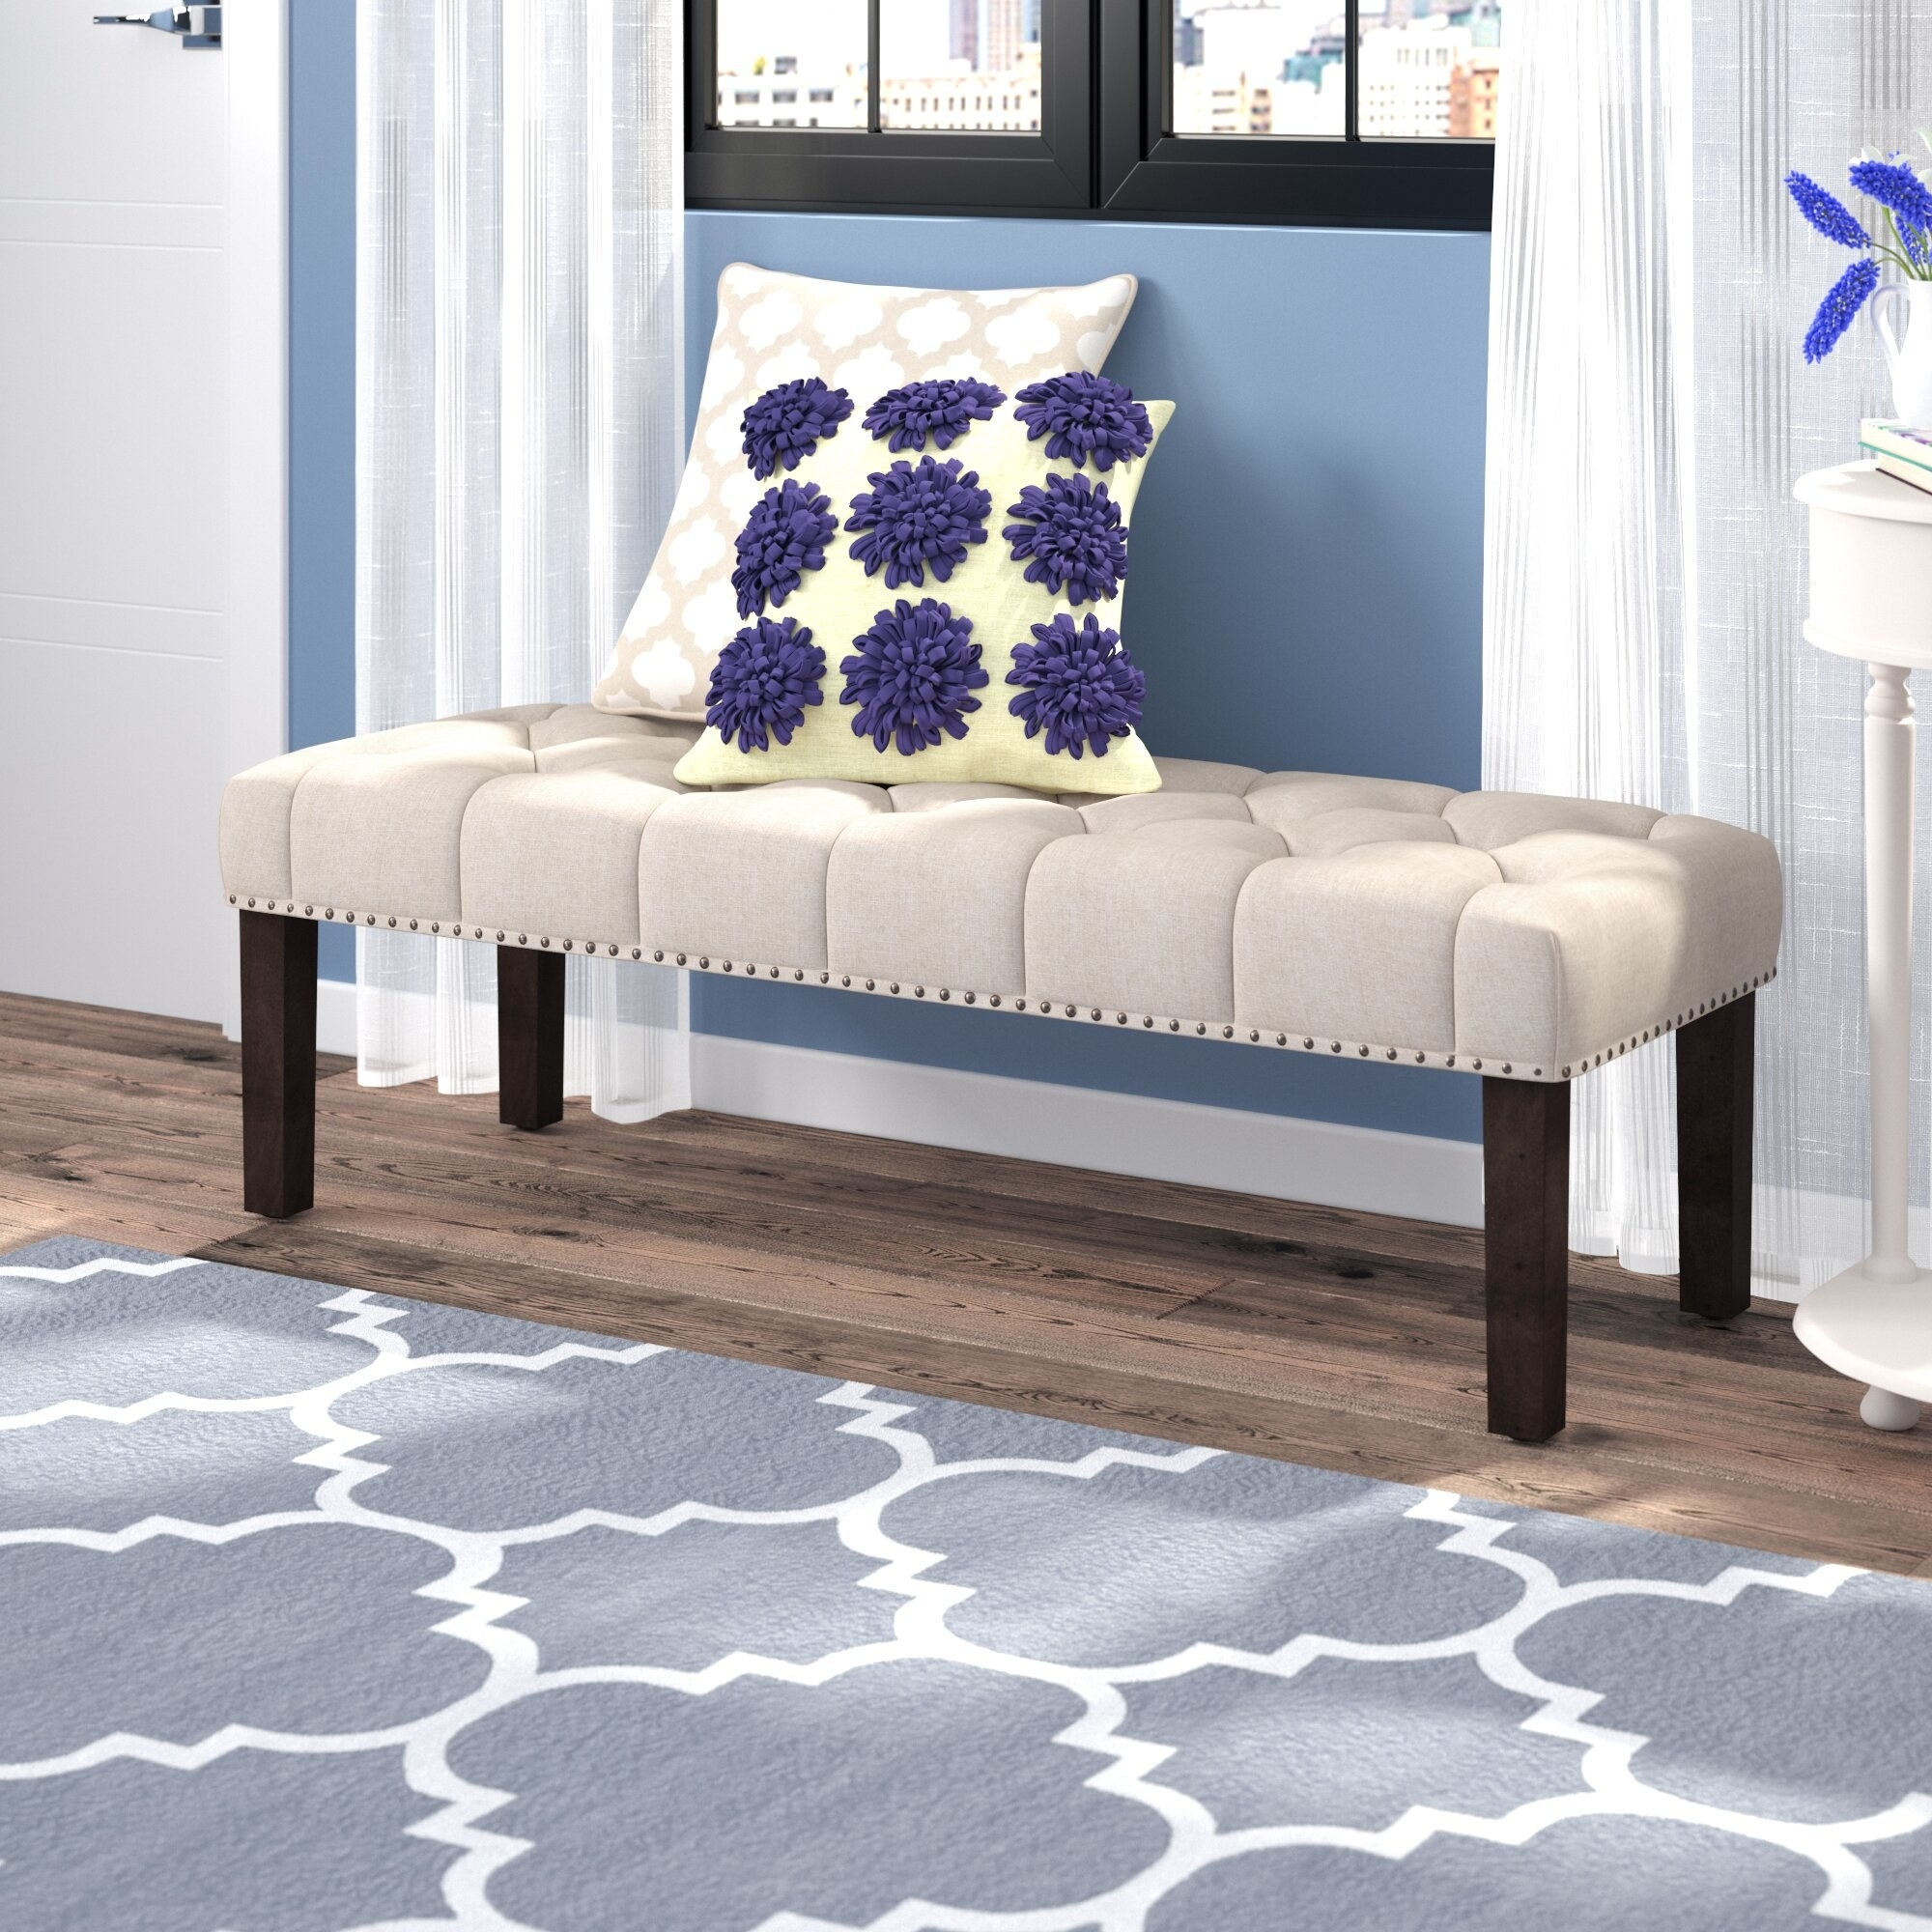 A white upholstered bench in a living room